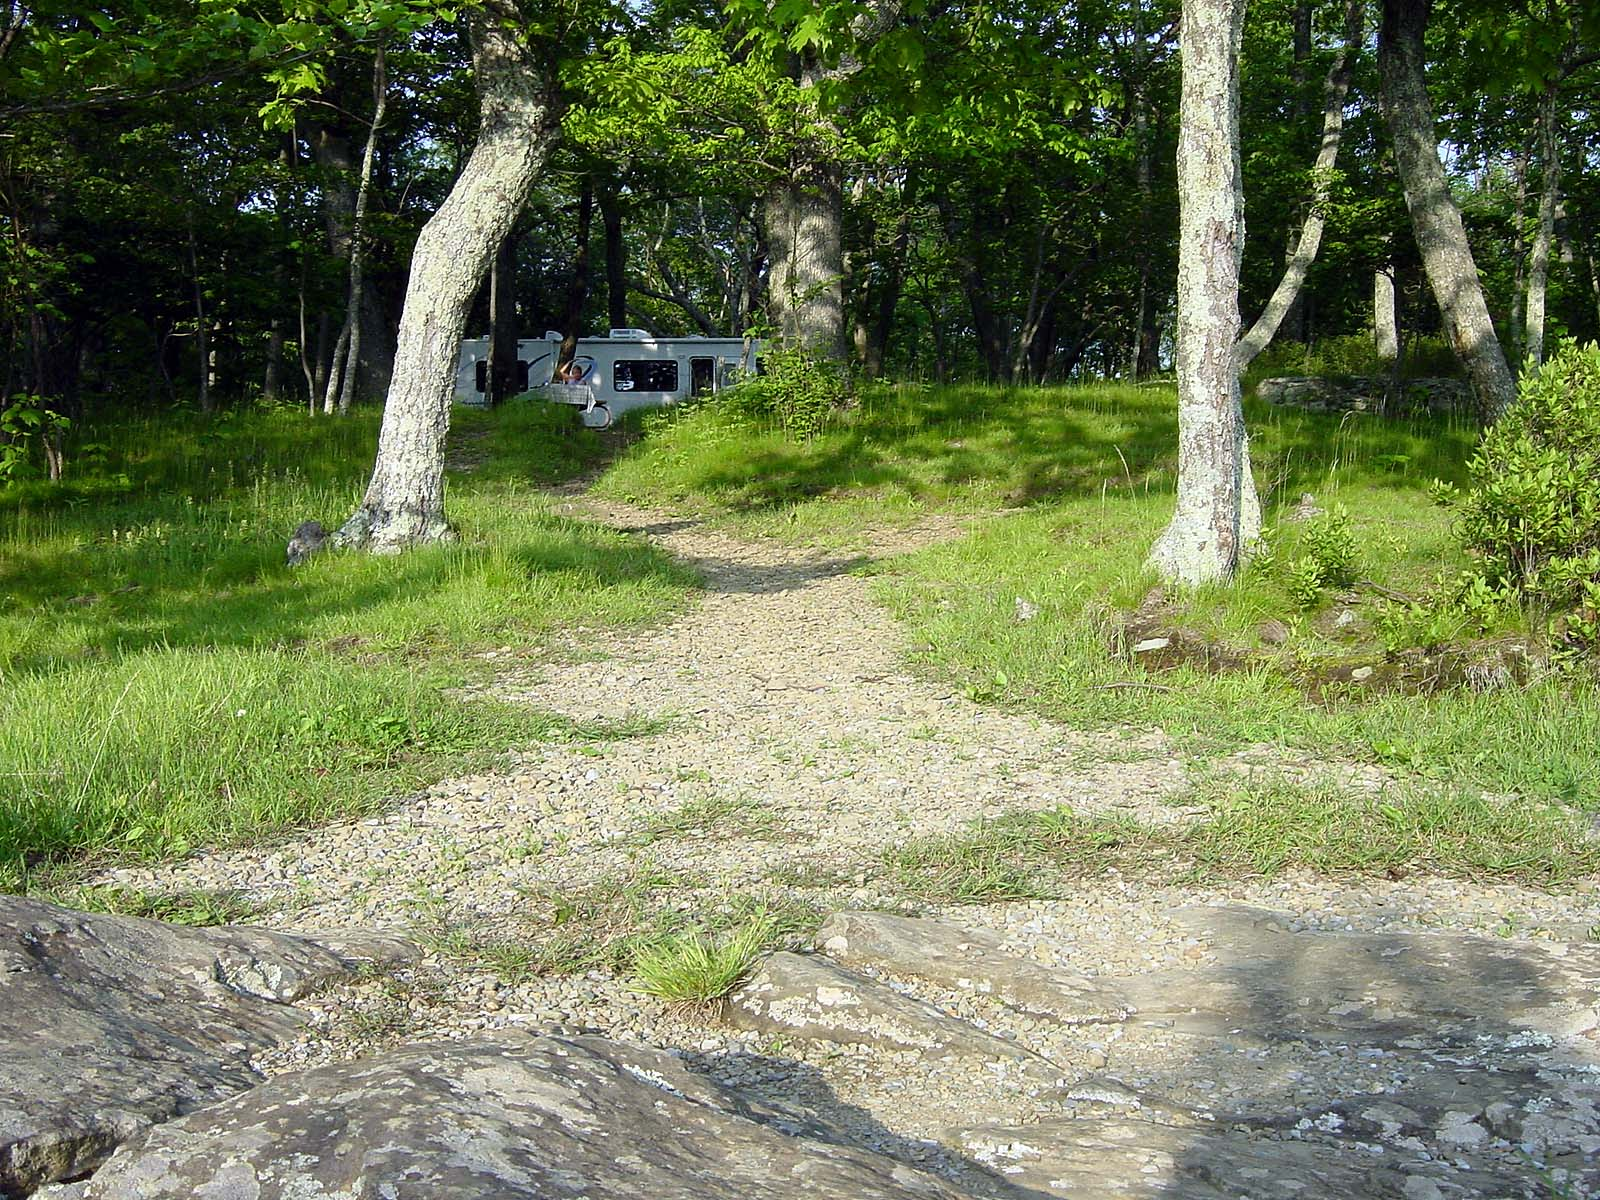 Loft Mountain Campground